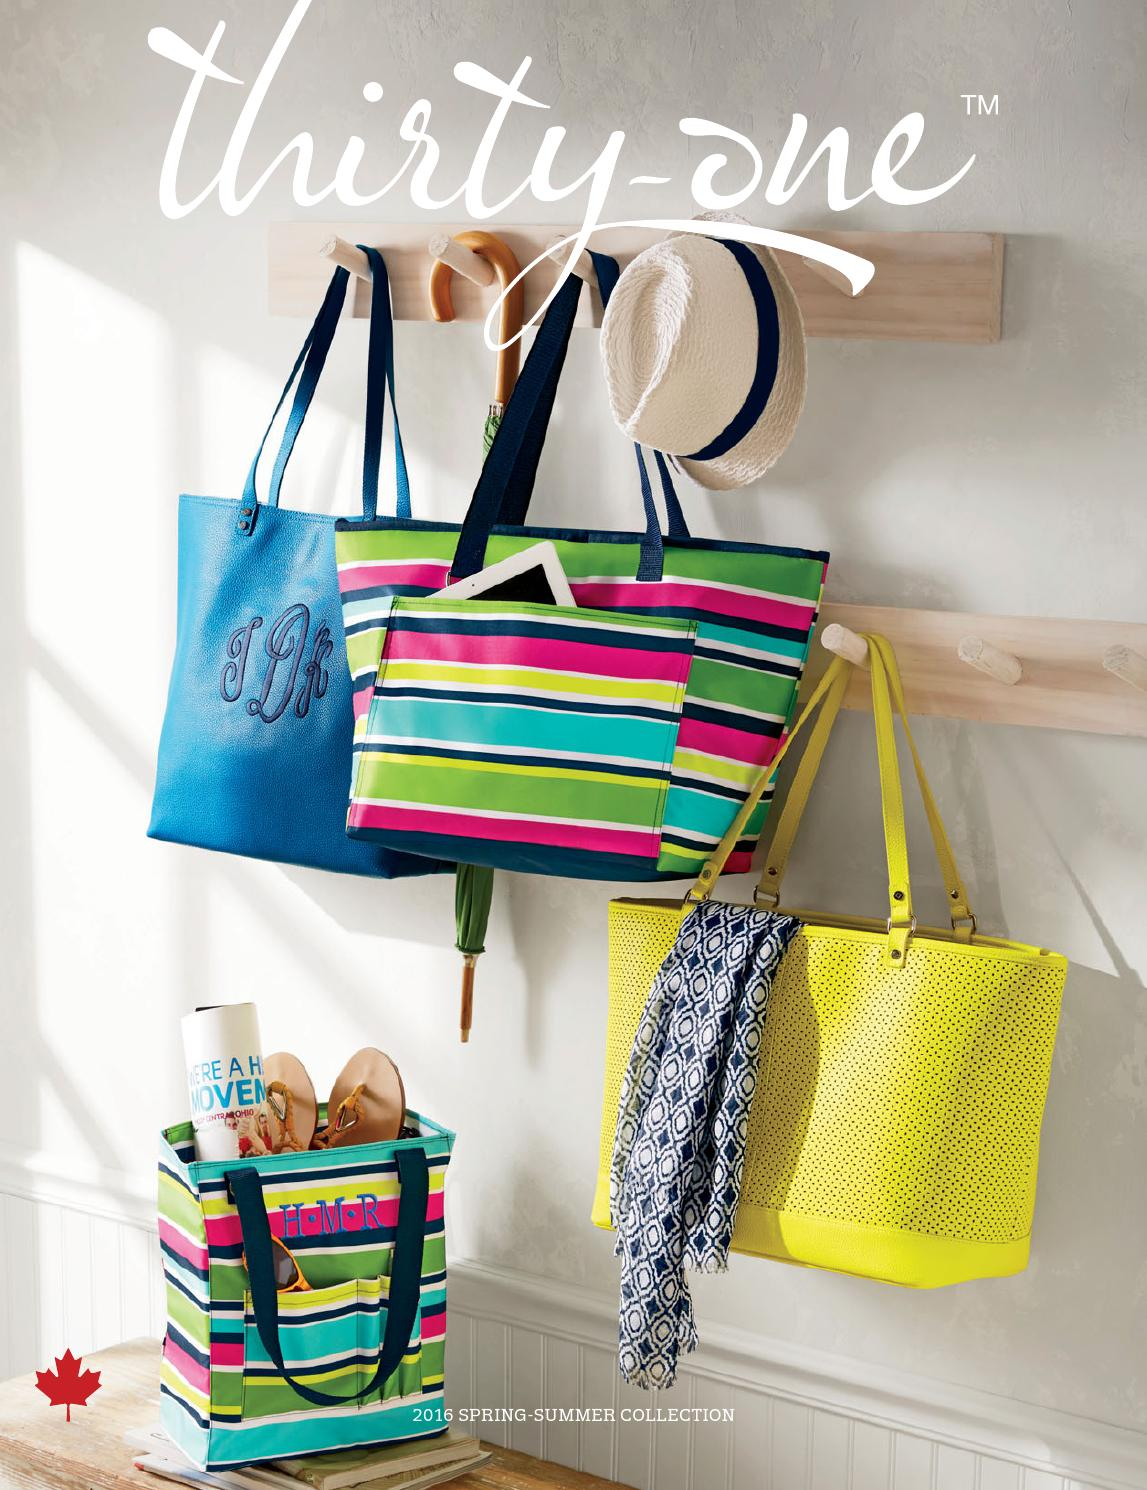 Thirty one november customer special 2014 - Thirty One November Customer Special 2014 48